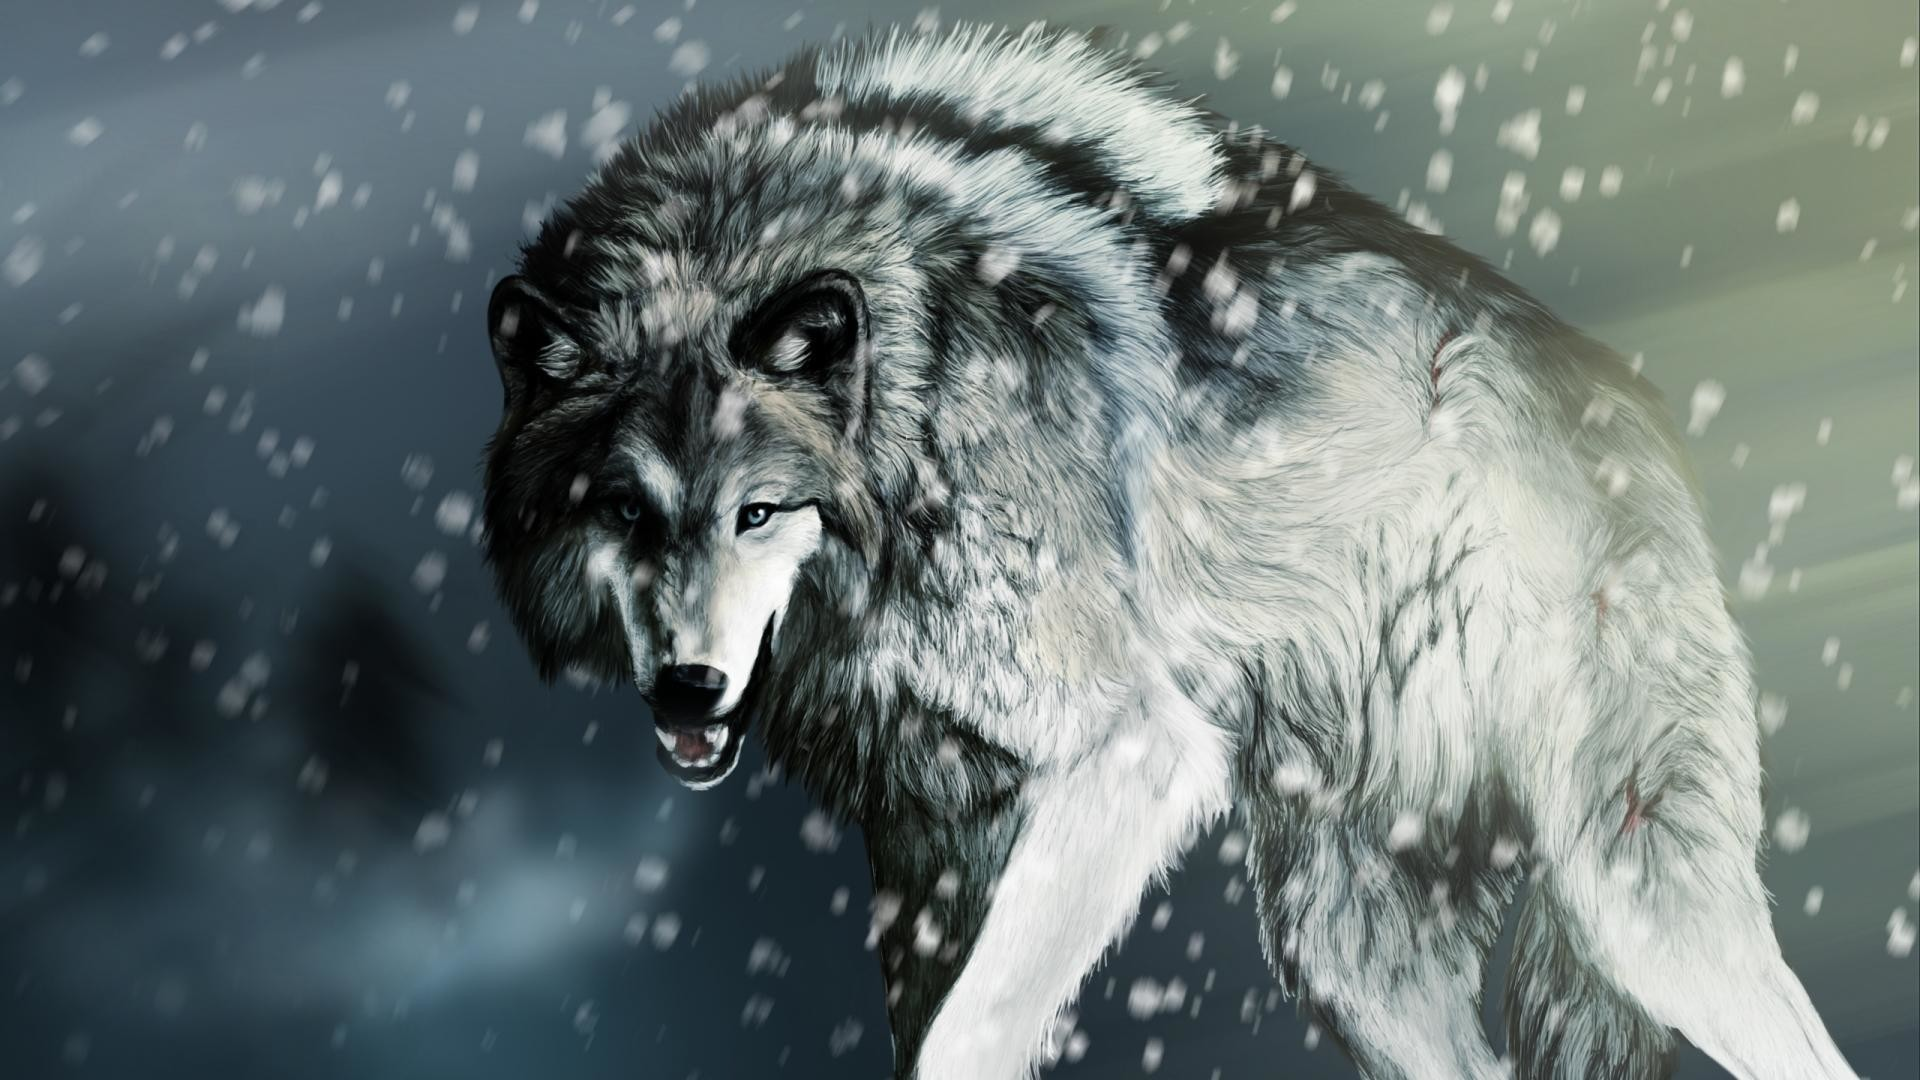 Res: 1920x1080,  Wallpapers For > Cool Wolf Wallpaper Hd